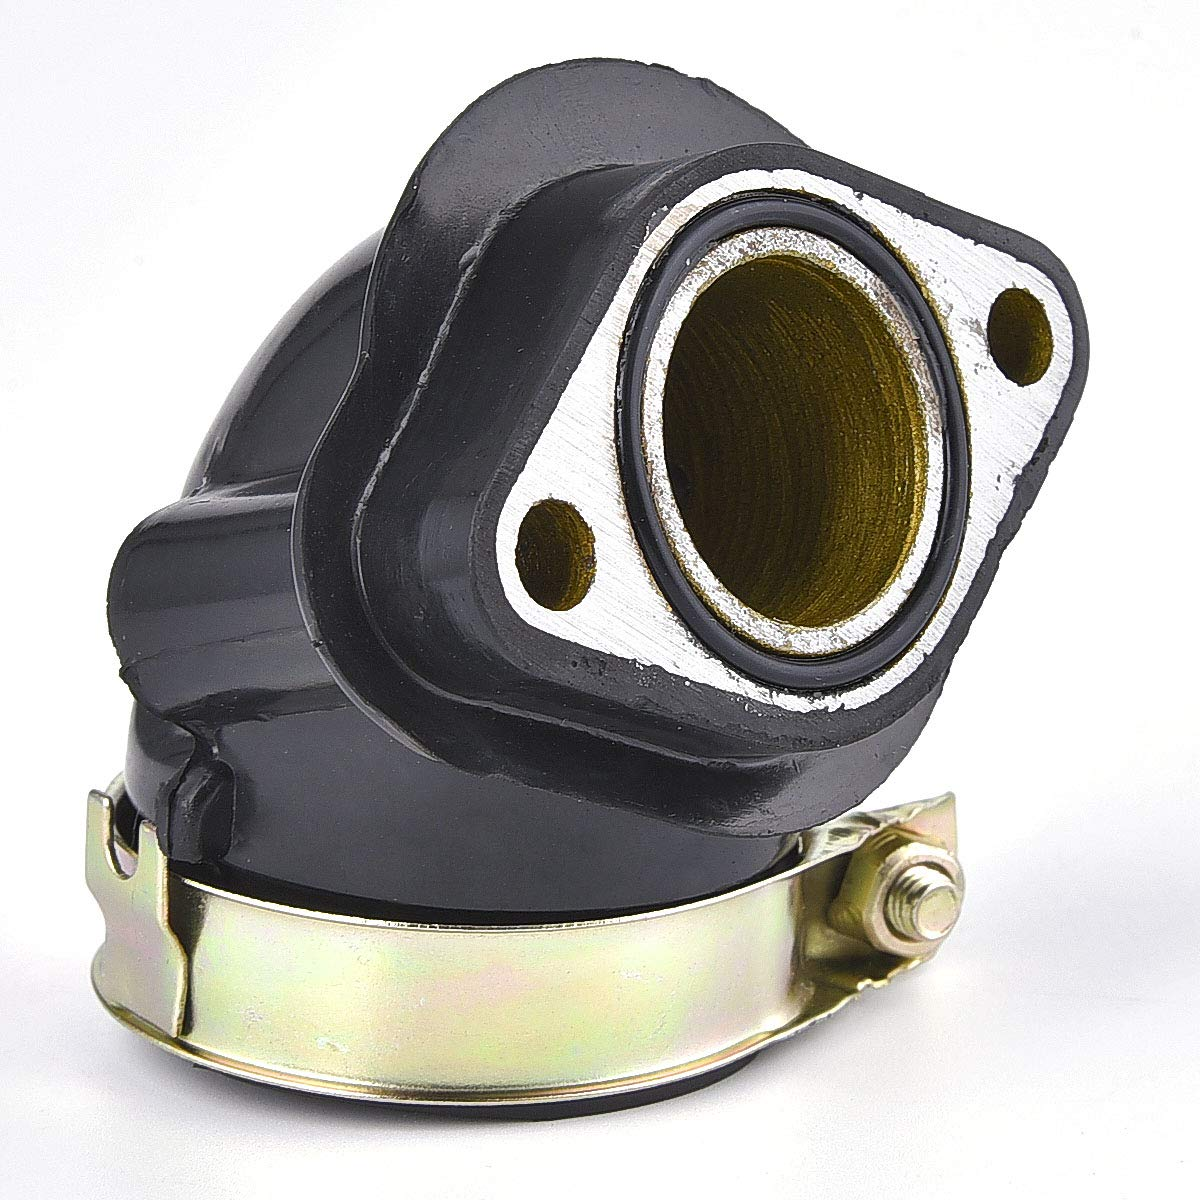 Go Kart Cart Intake Manifold for Tomberlin Crossfire 150 150R 150cc GY6 125 150 MTATCN